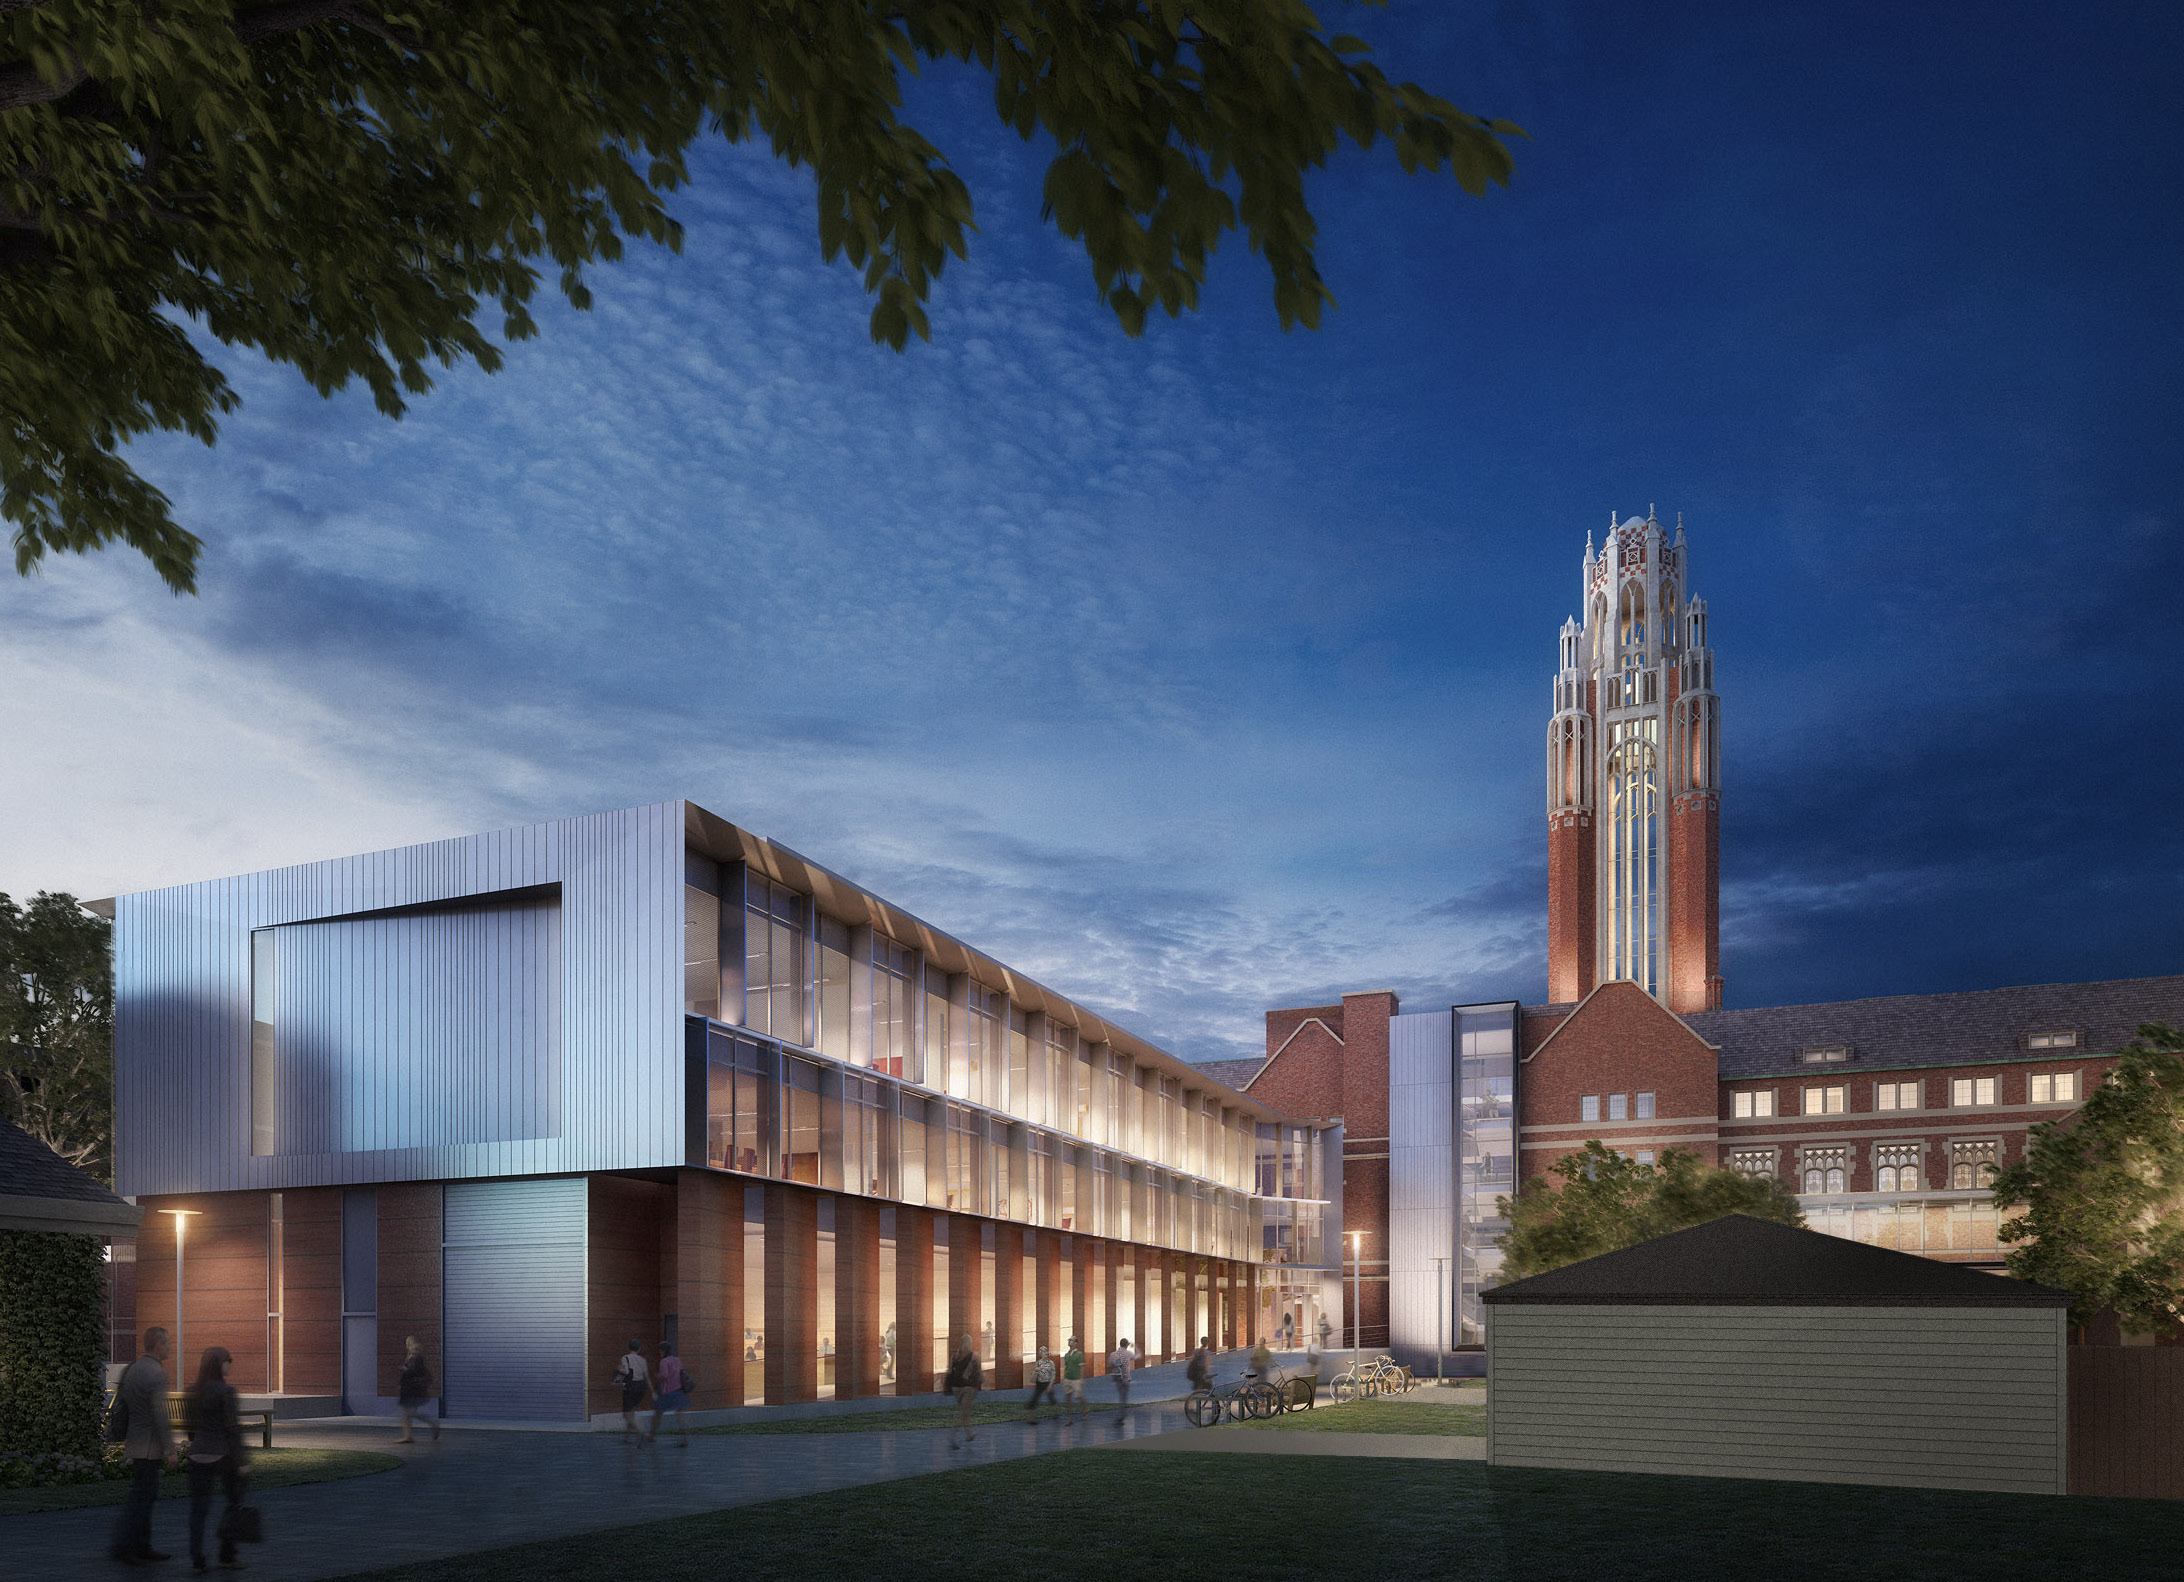 Modern Architecture Chicago u of c addition updates old seminary for modern economics